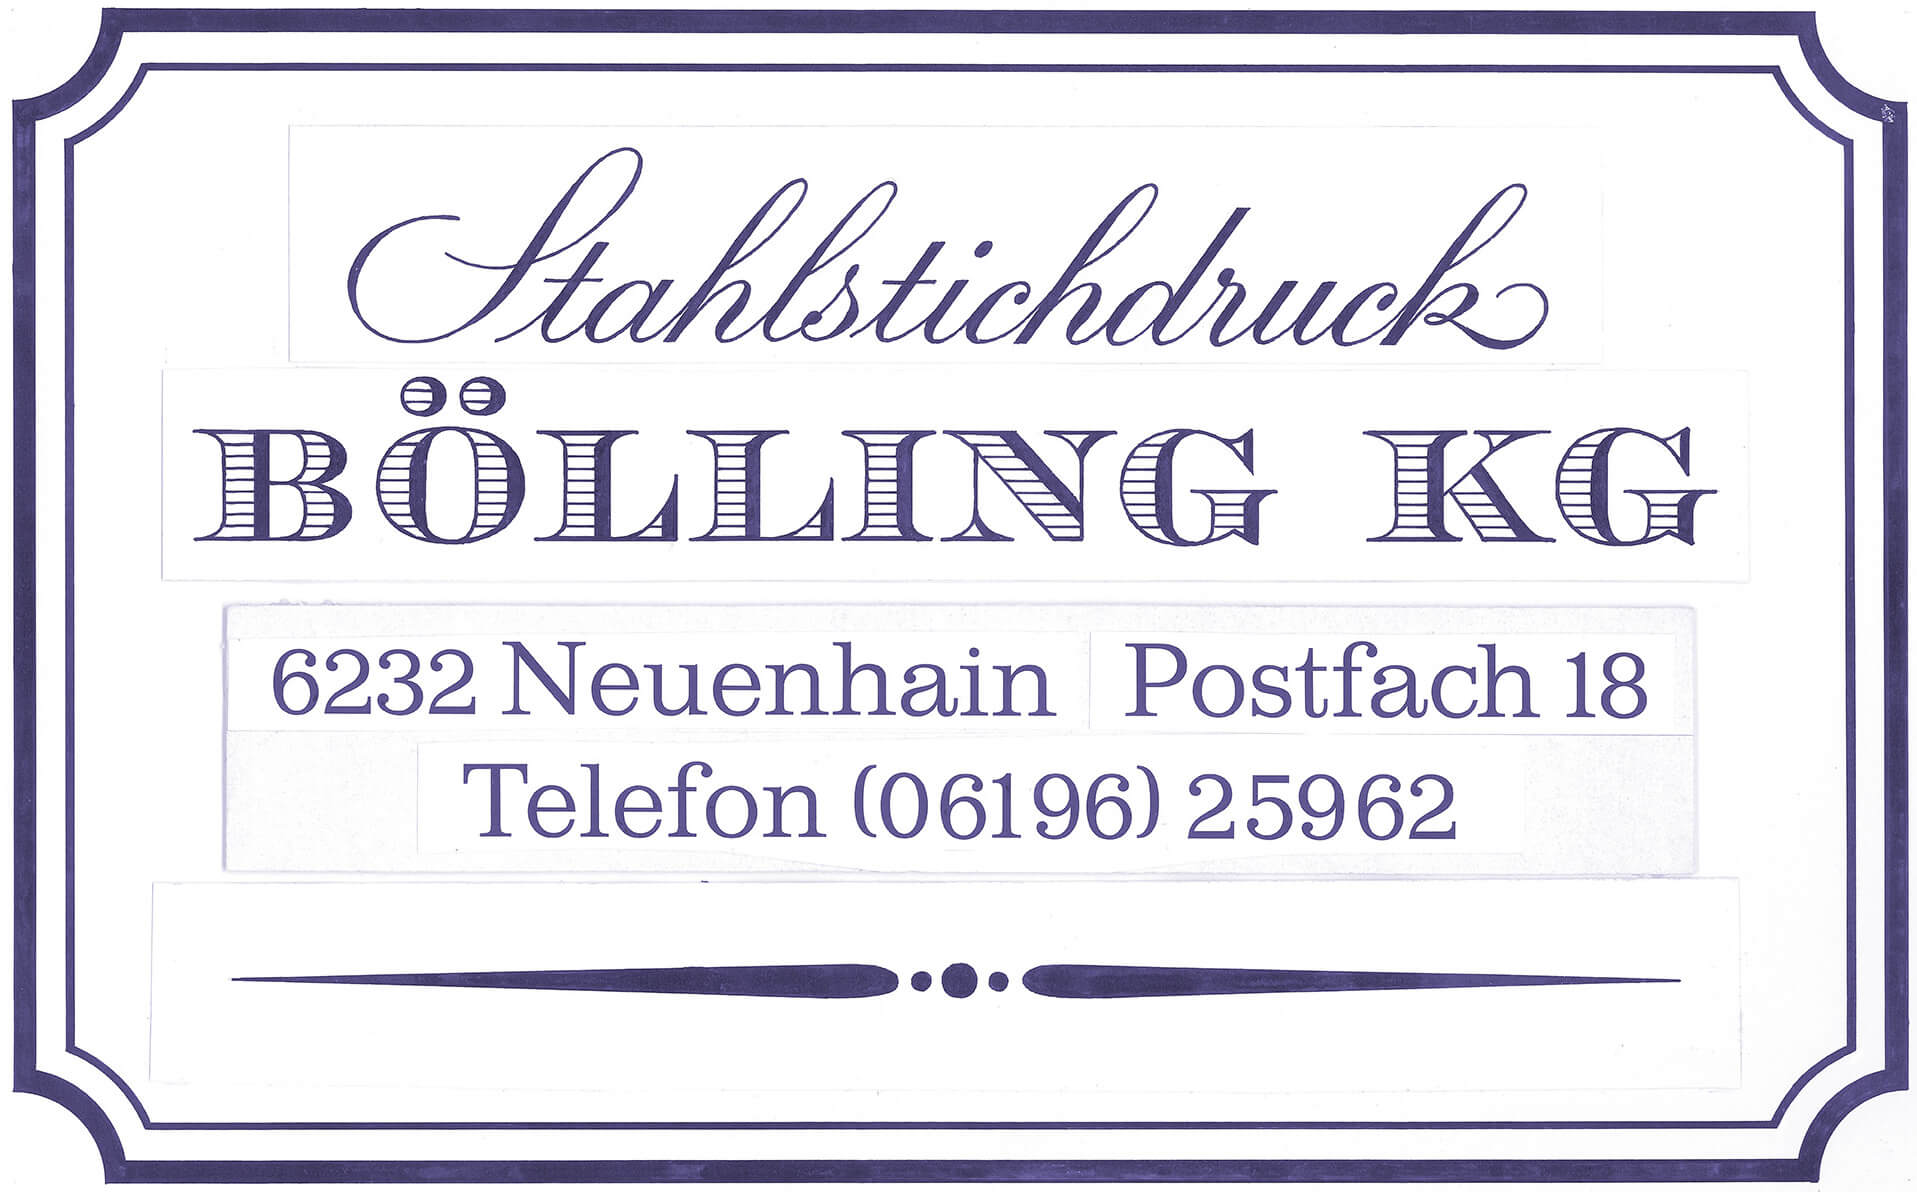 Logo of Stahlstichdruck Bölling KG when the company was founded